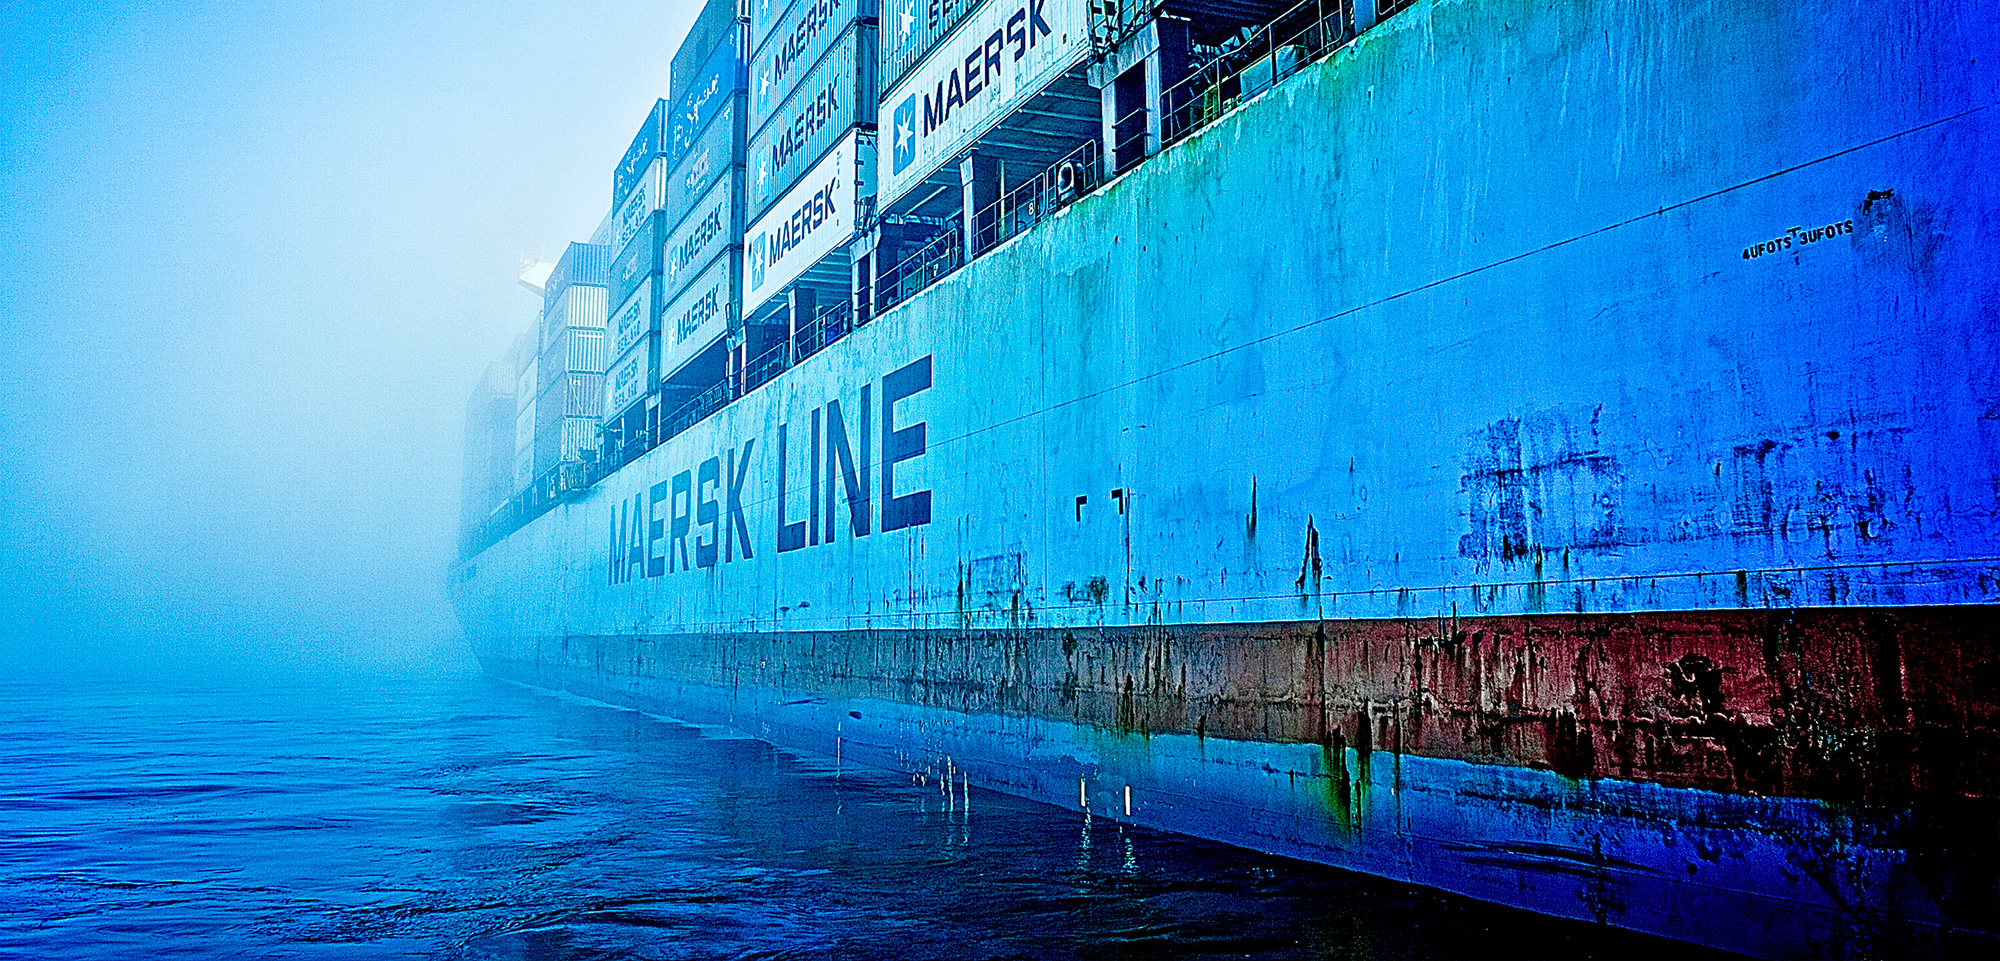 a Maersk container ship